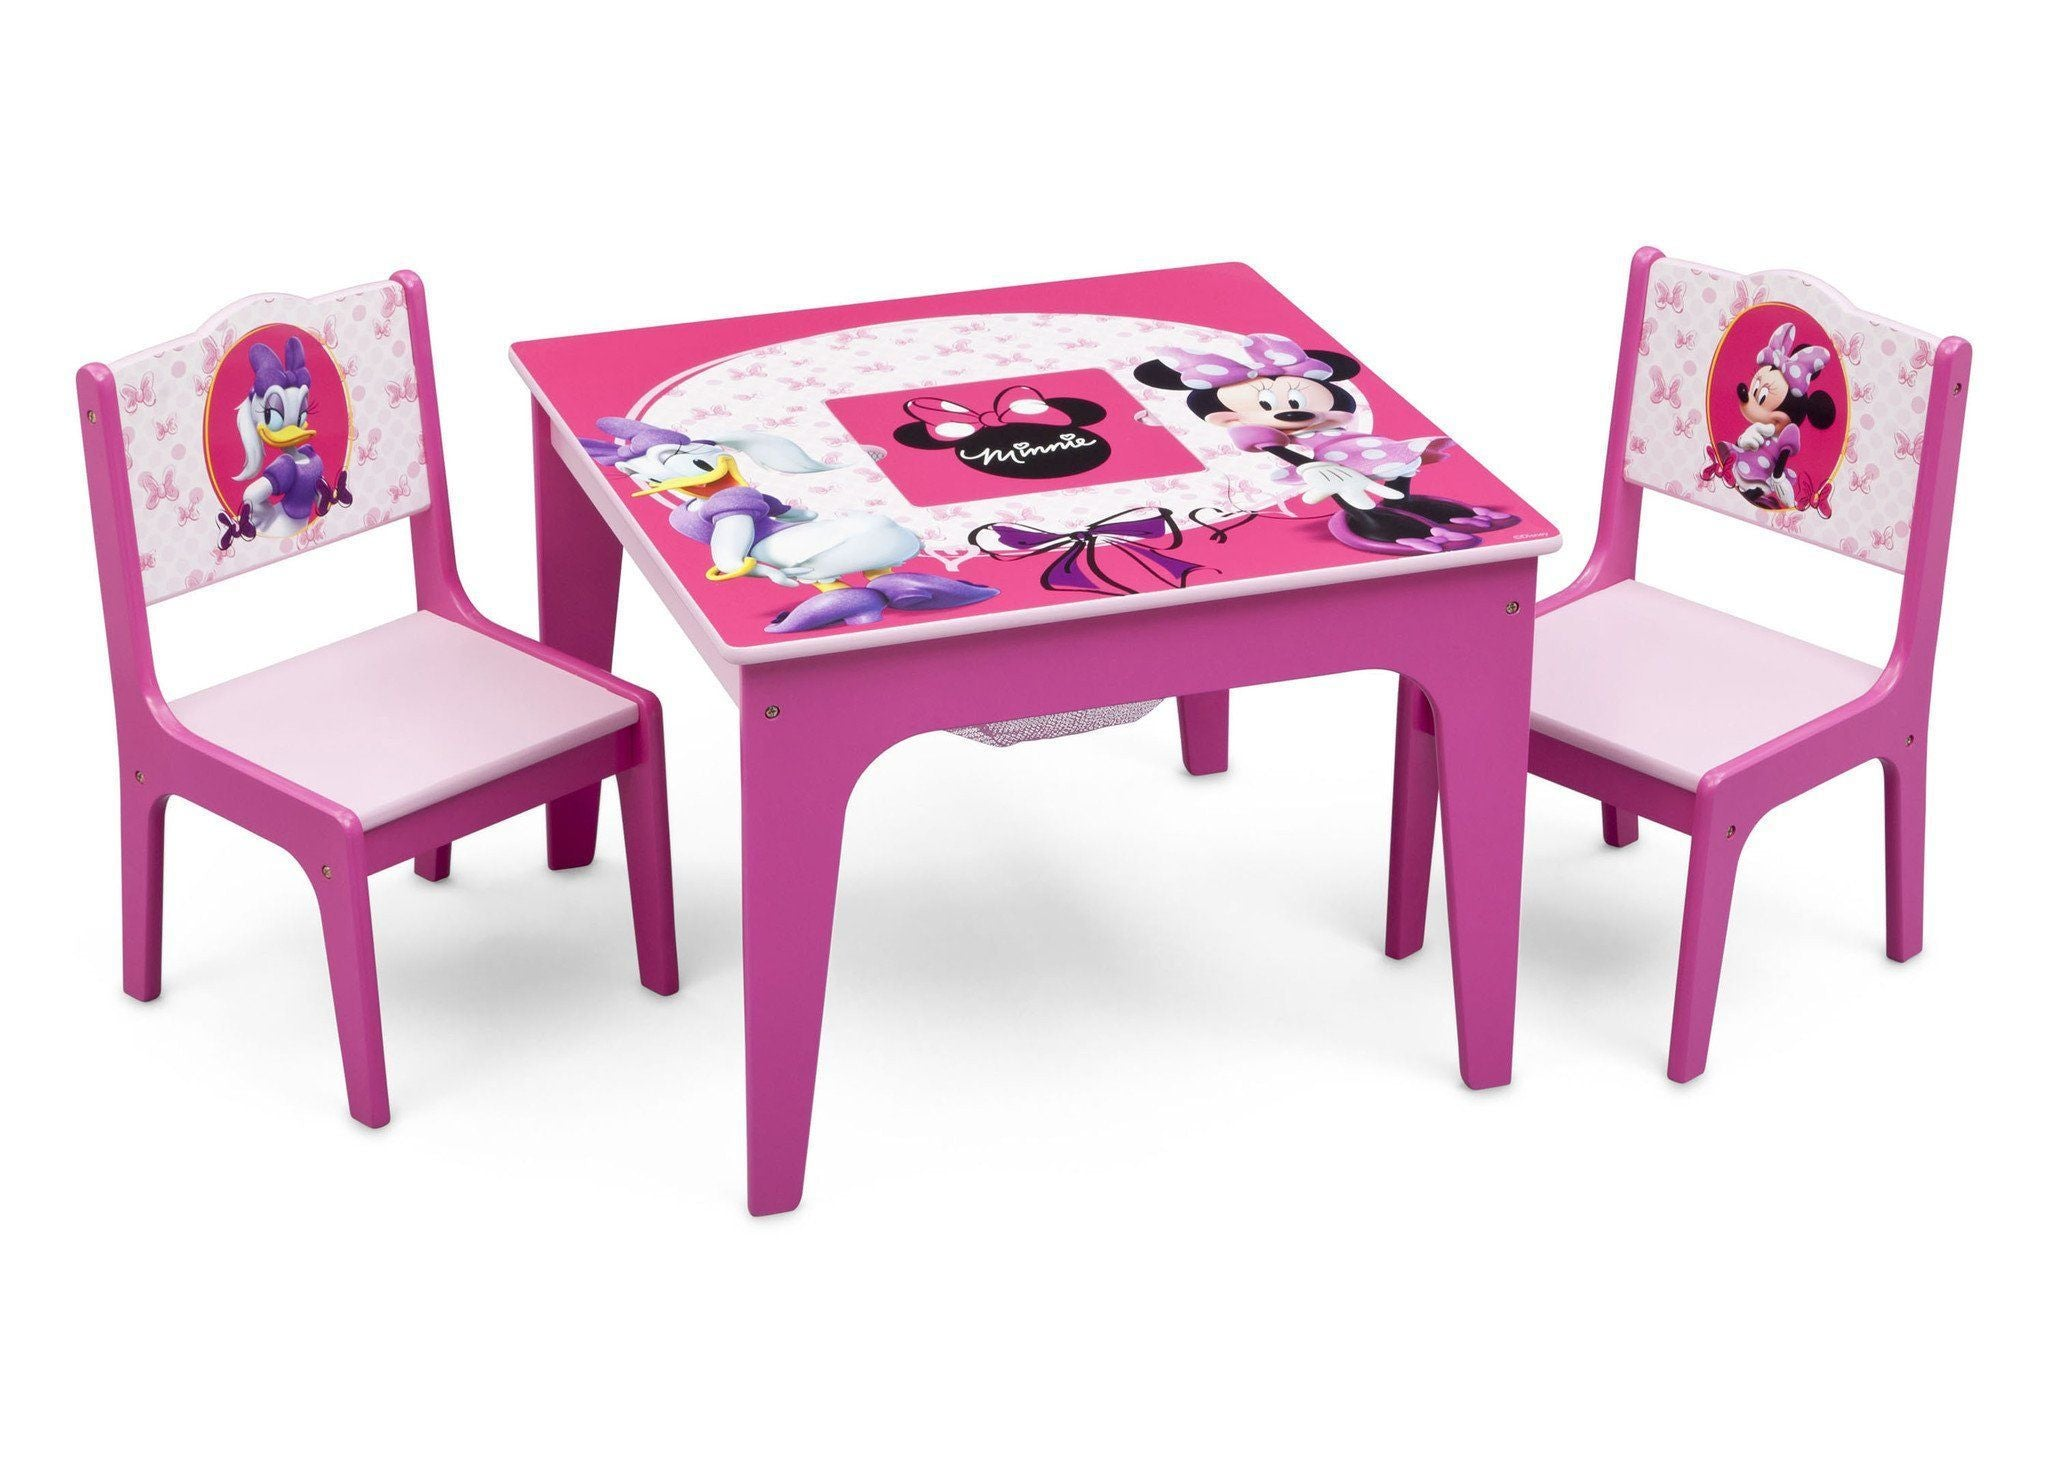 Delta Children Minnie Mouse Deluxe Table and Chair Set with Storage, Right View